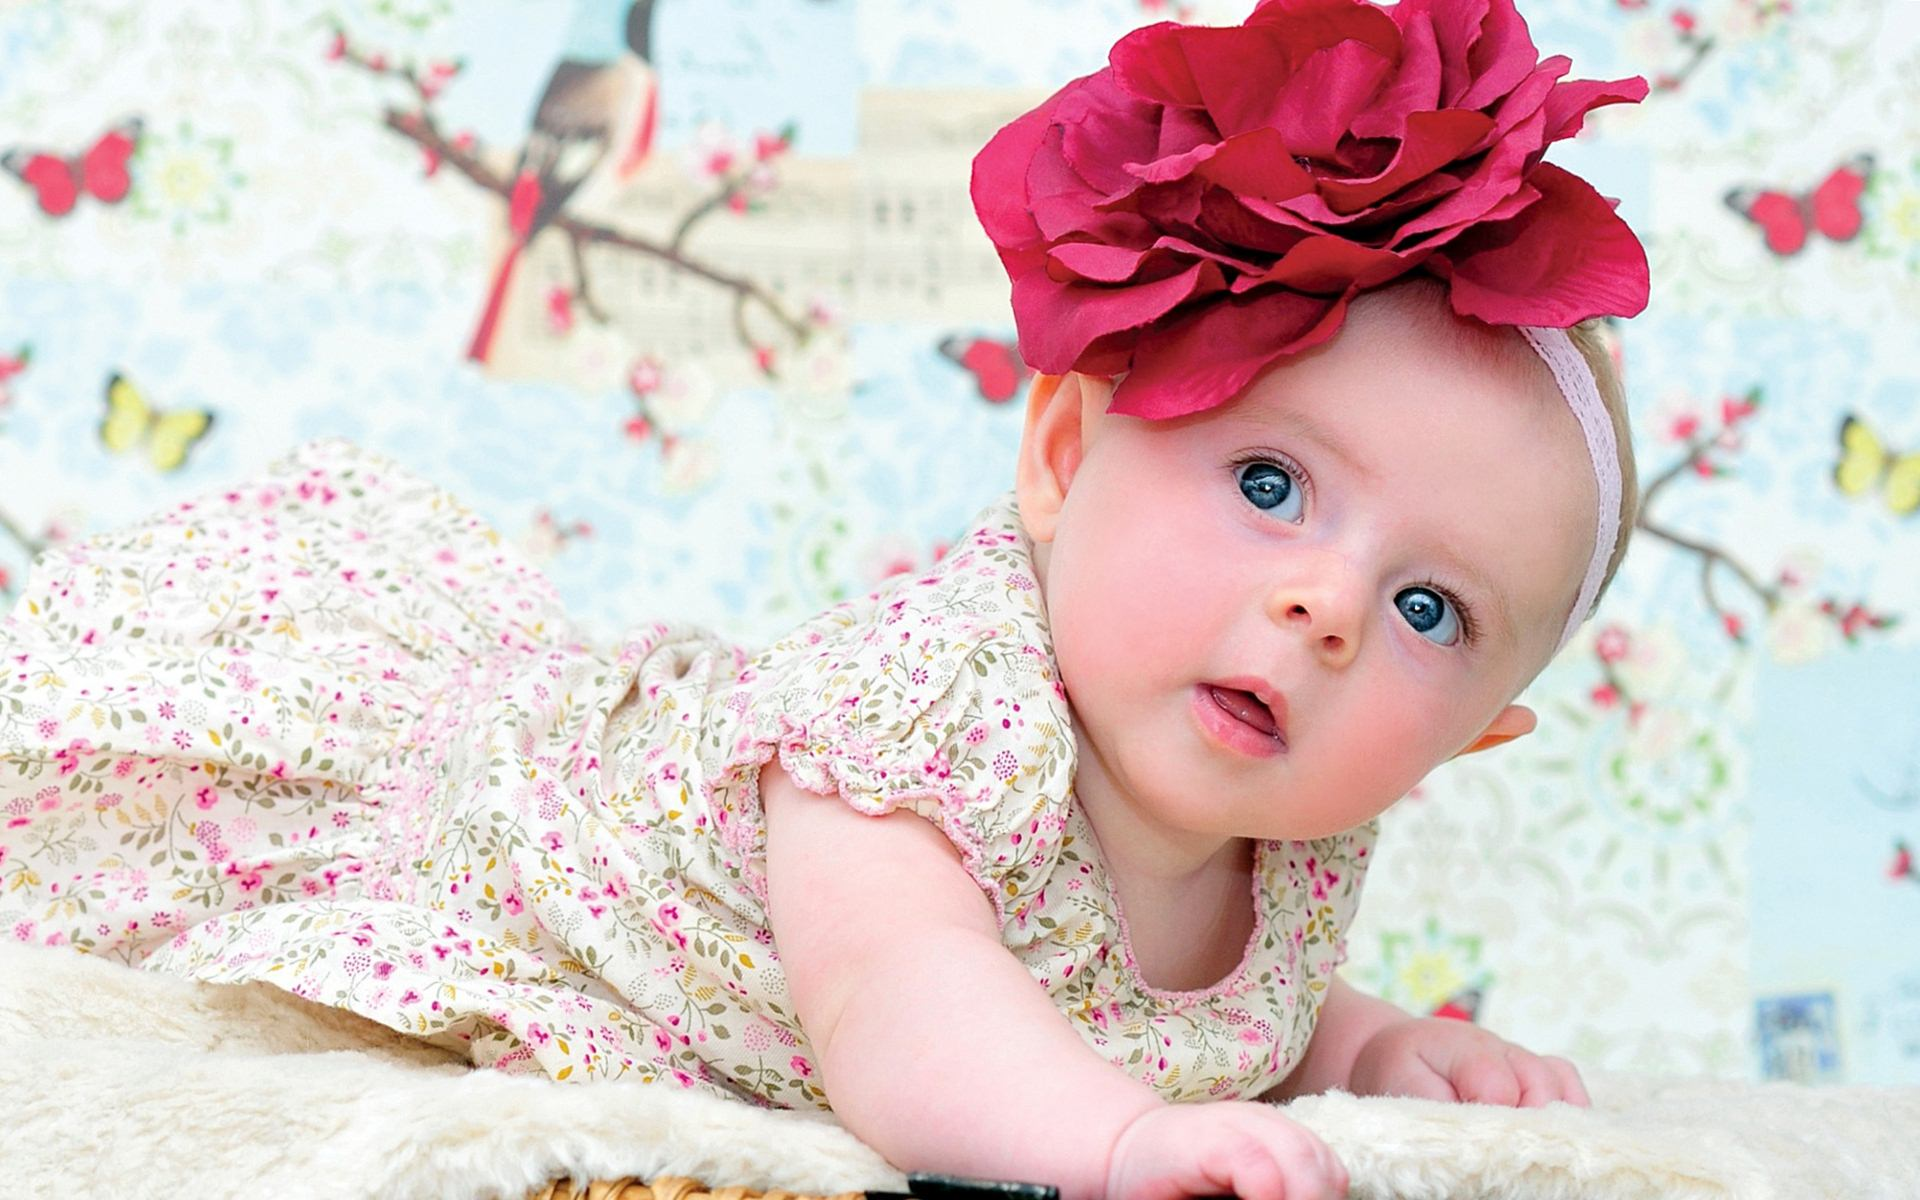 100% HDQ Baby Girl Wallpapers | Desktop 4K High Quality Images